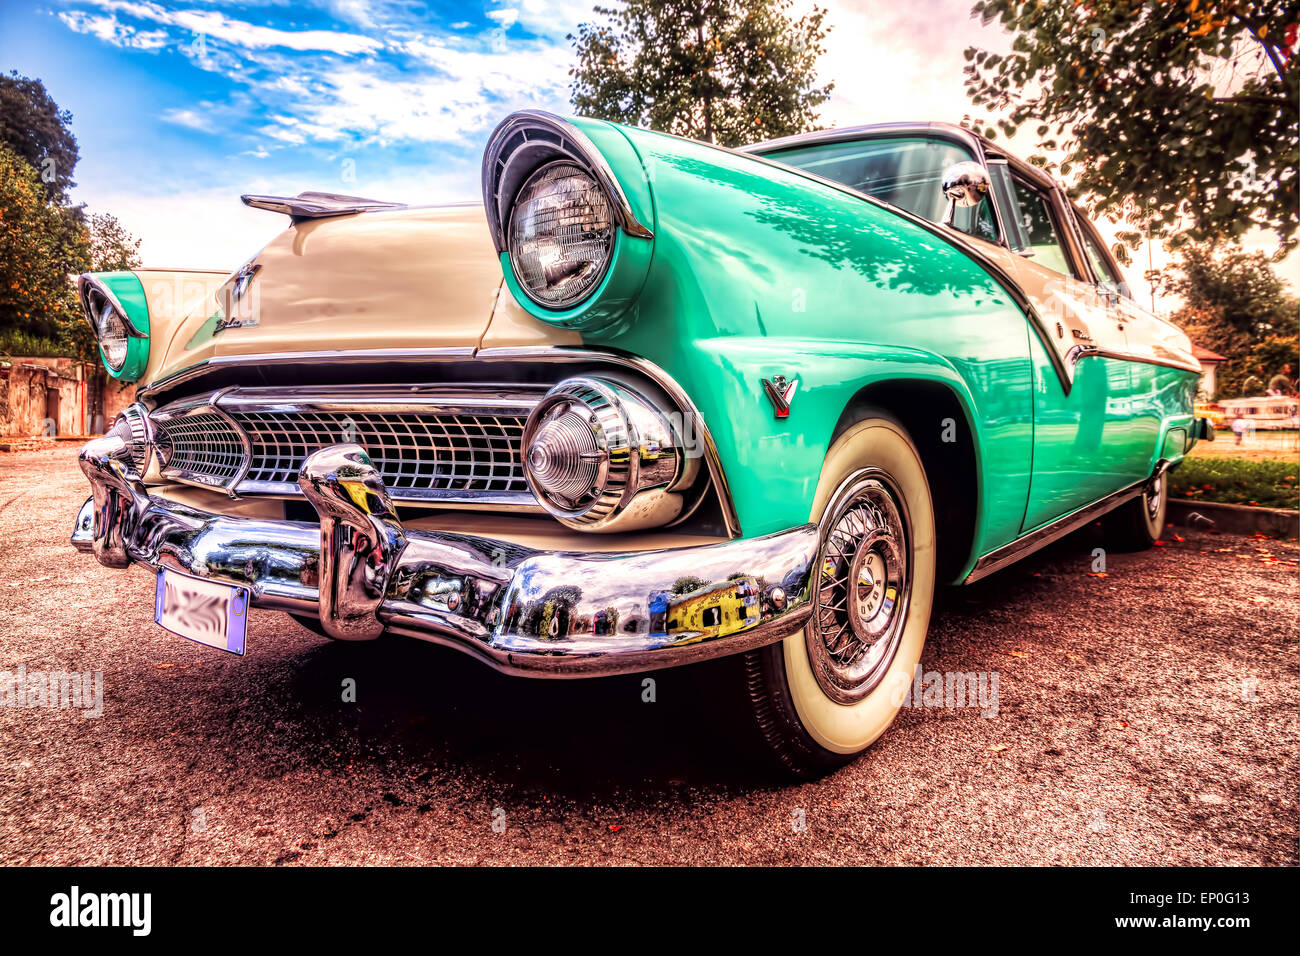 Ford Crown Victoria 1965, great american vintage car Stock Photo ...